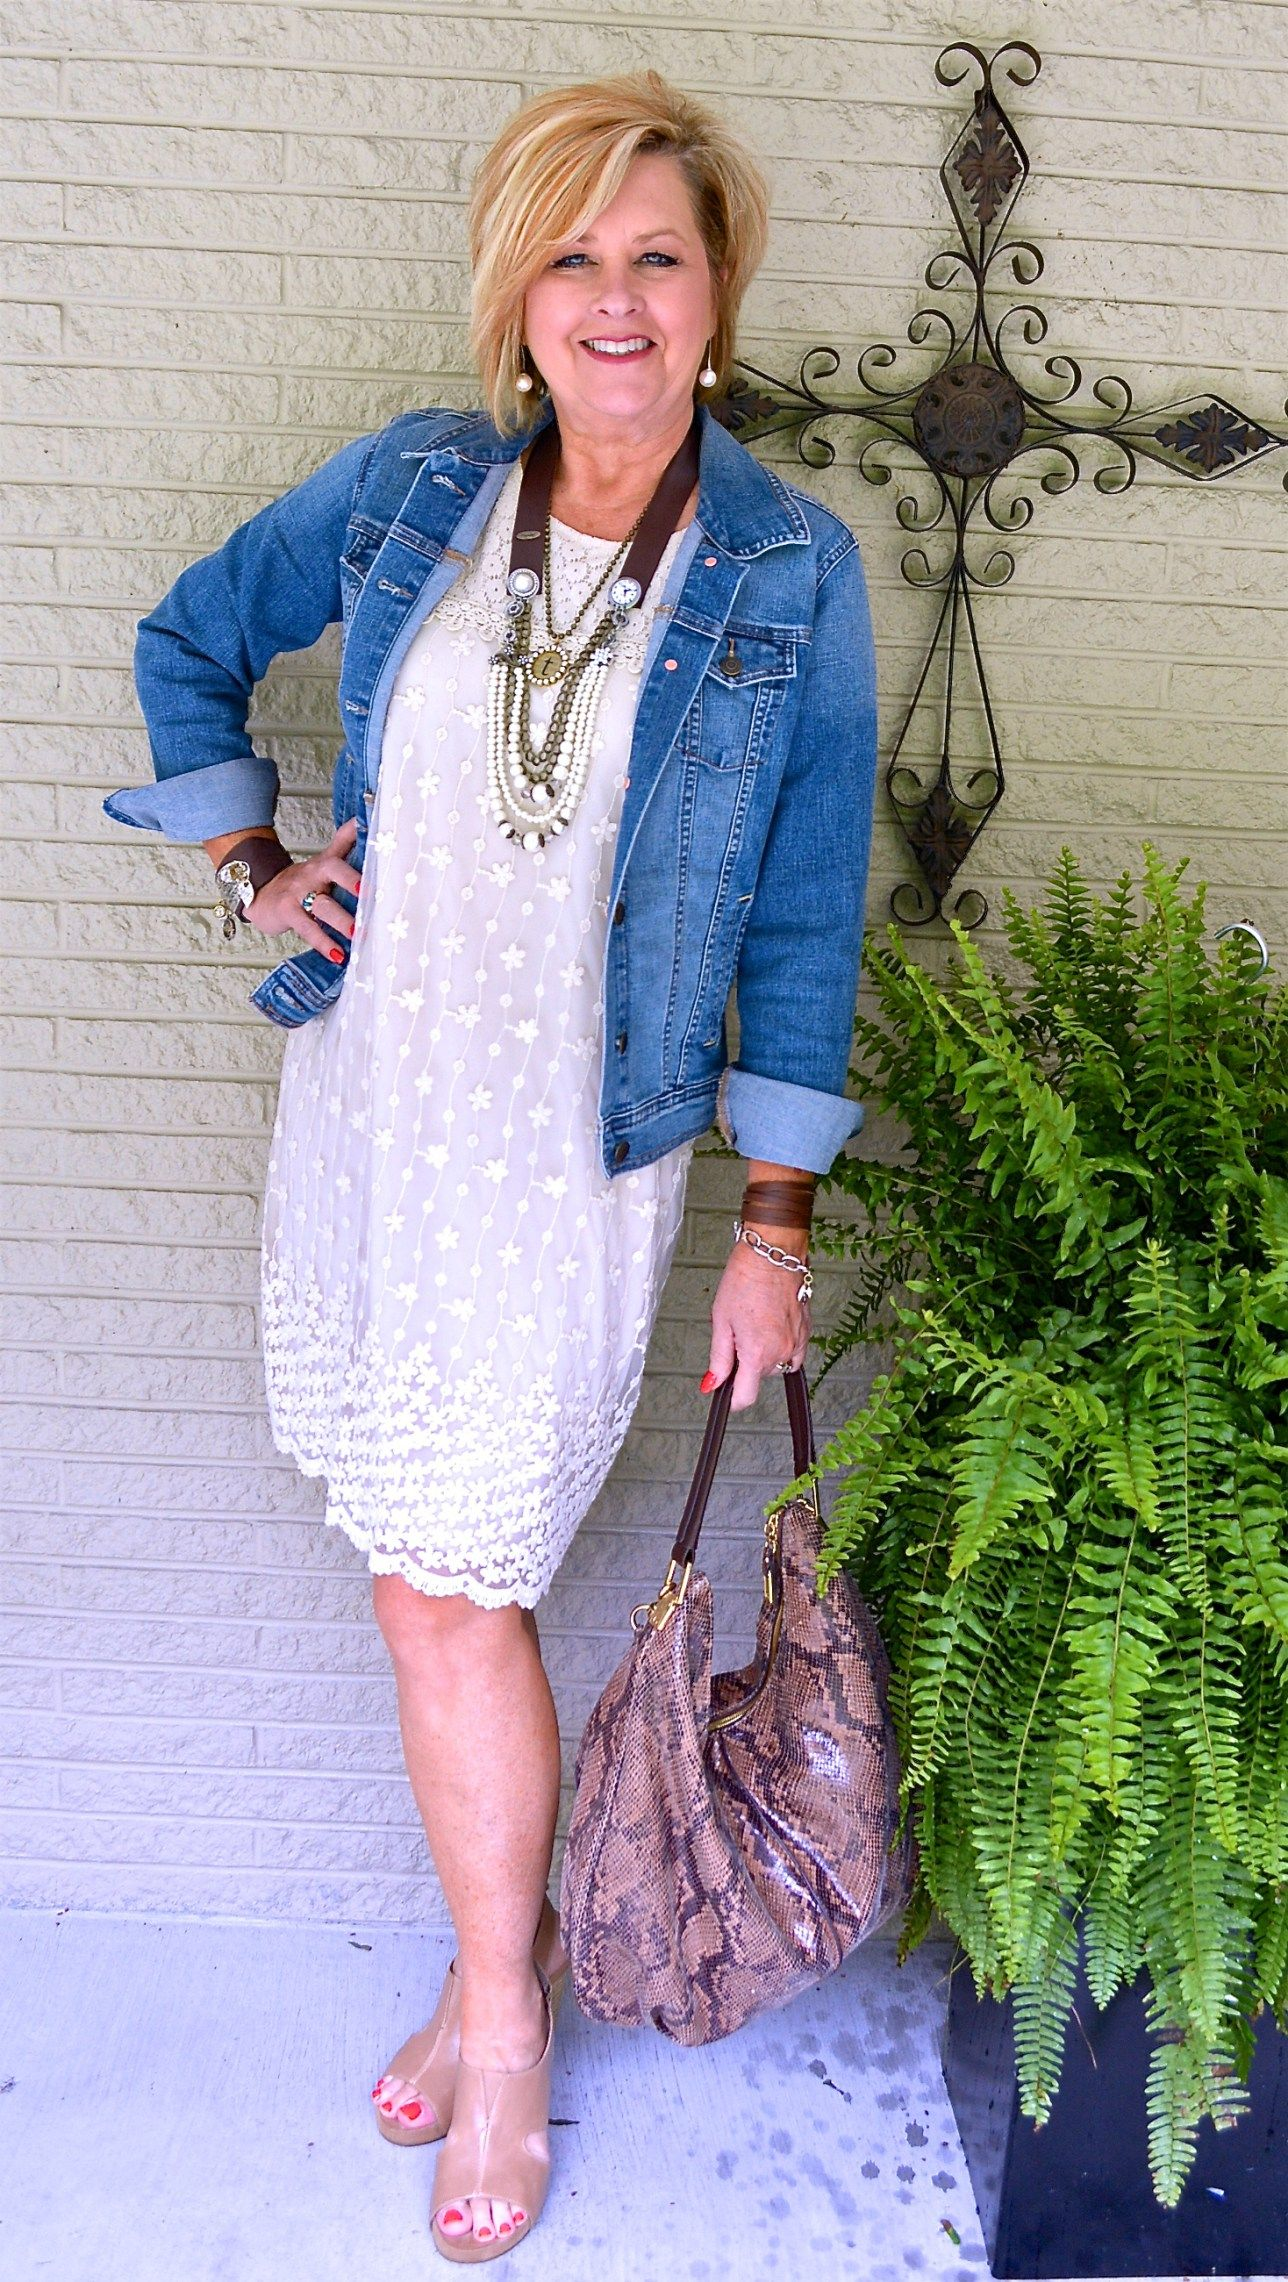 WHAT IS YOUR FAVORITE SUMMER OUTFIT | AGELESS LINK-UP – 50 IS NOT OLD